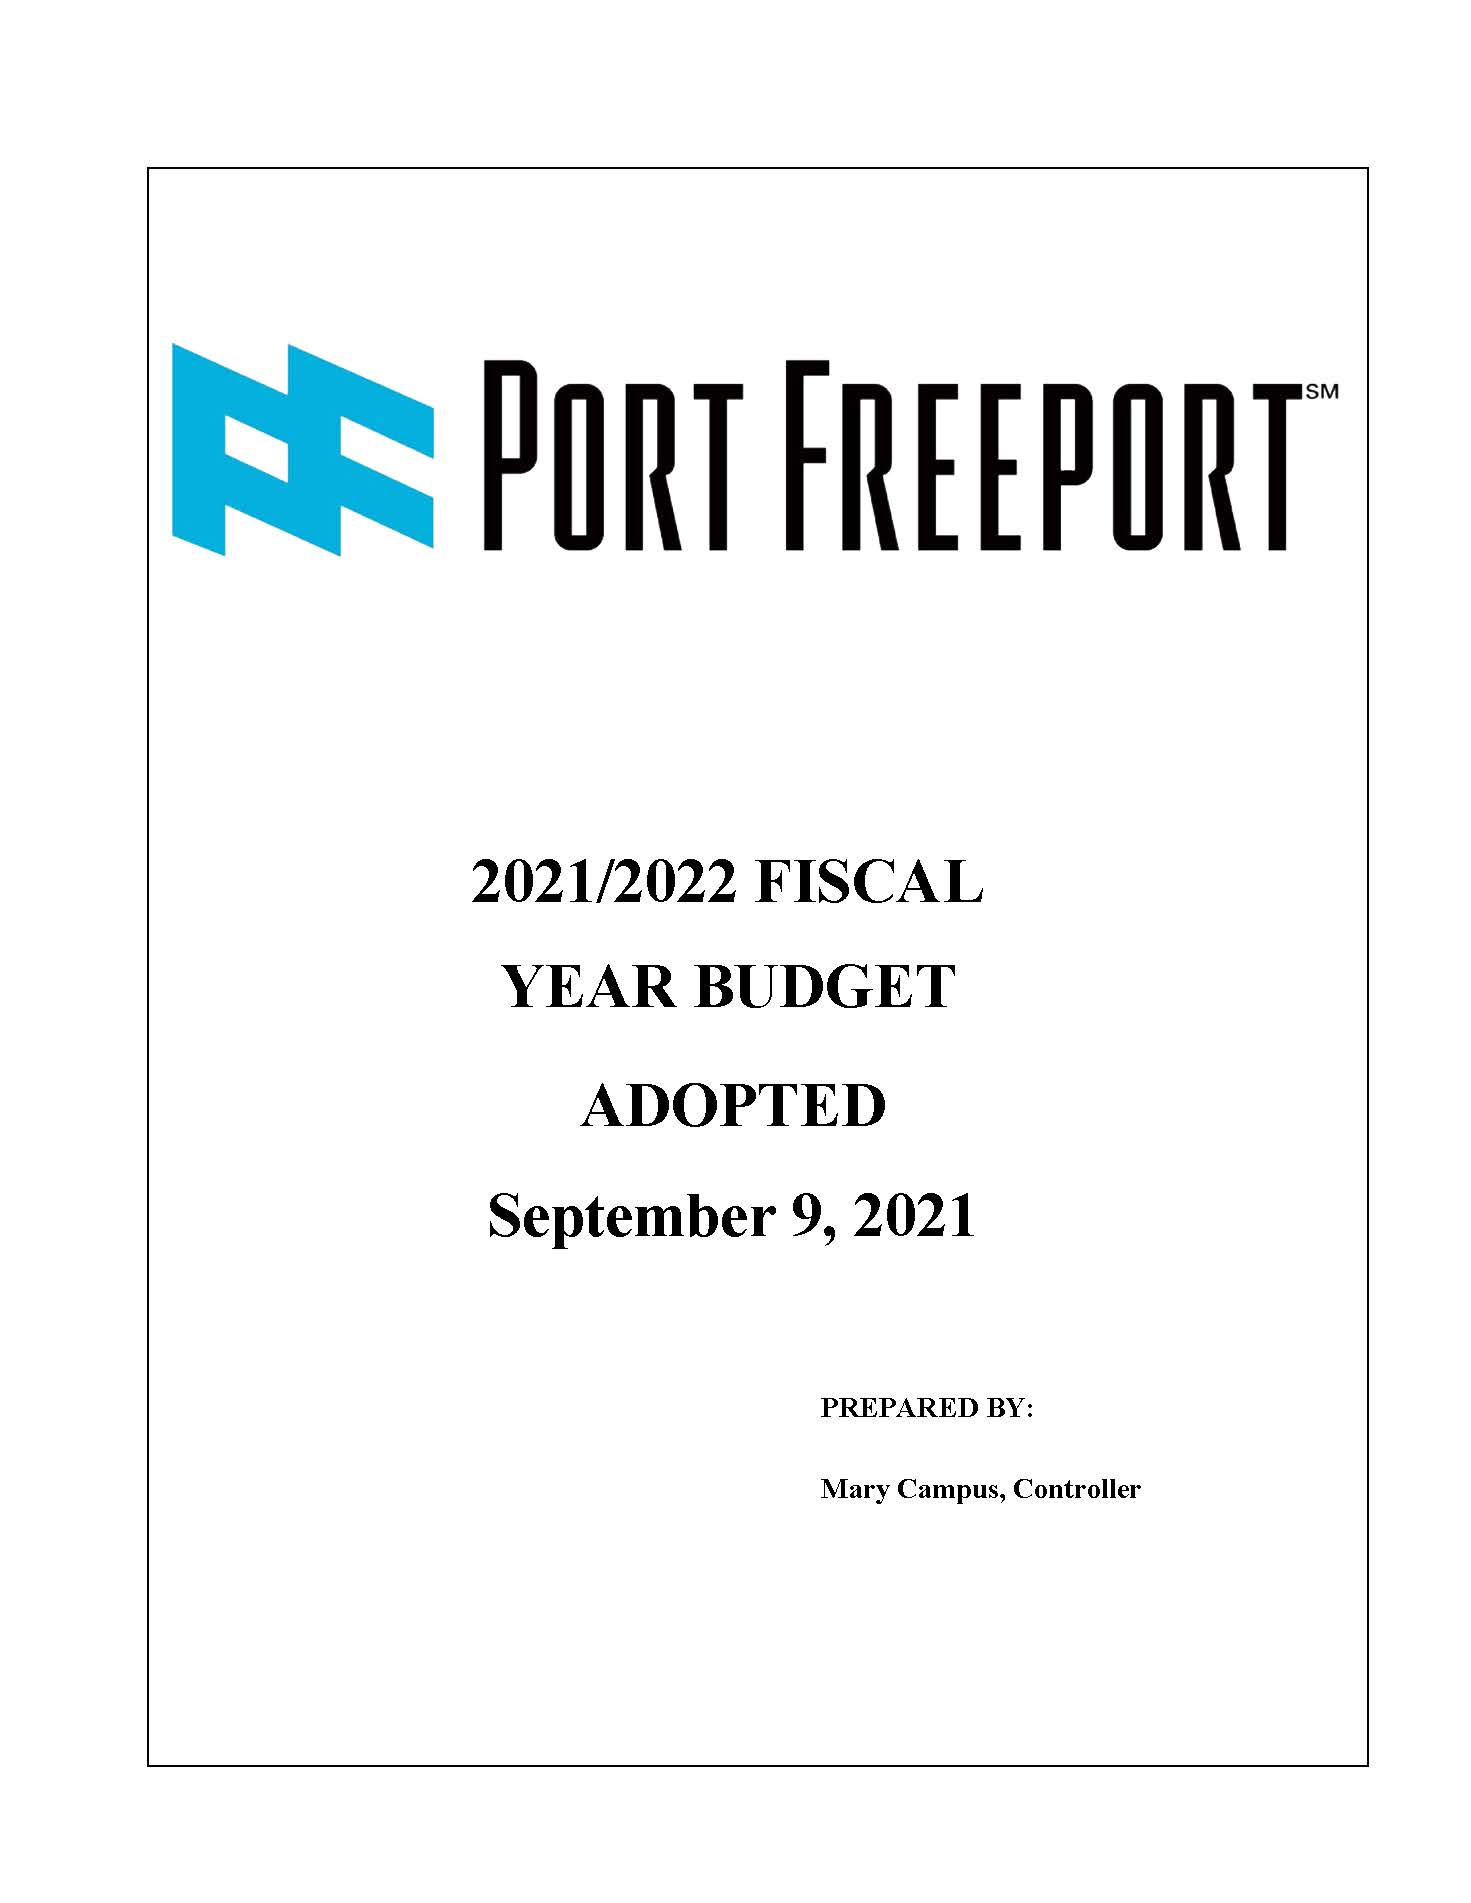 2022 Budget Adopted 9.9.21 cover page_Page_01